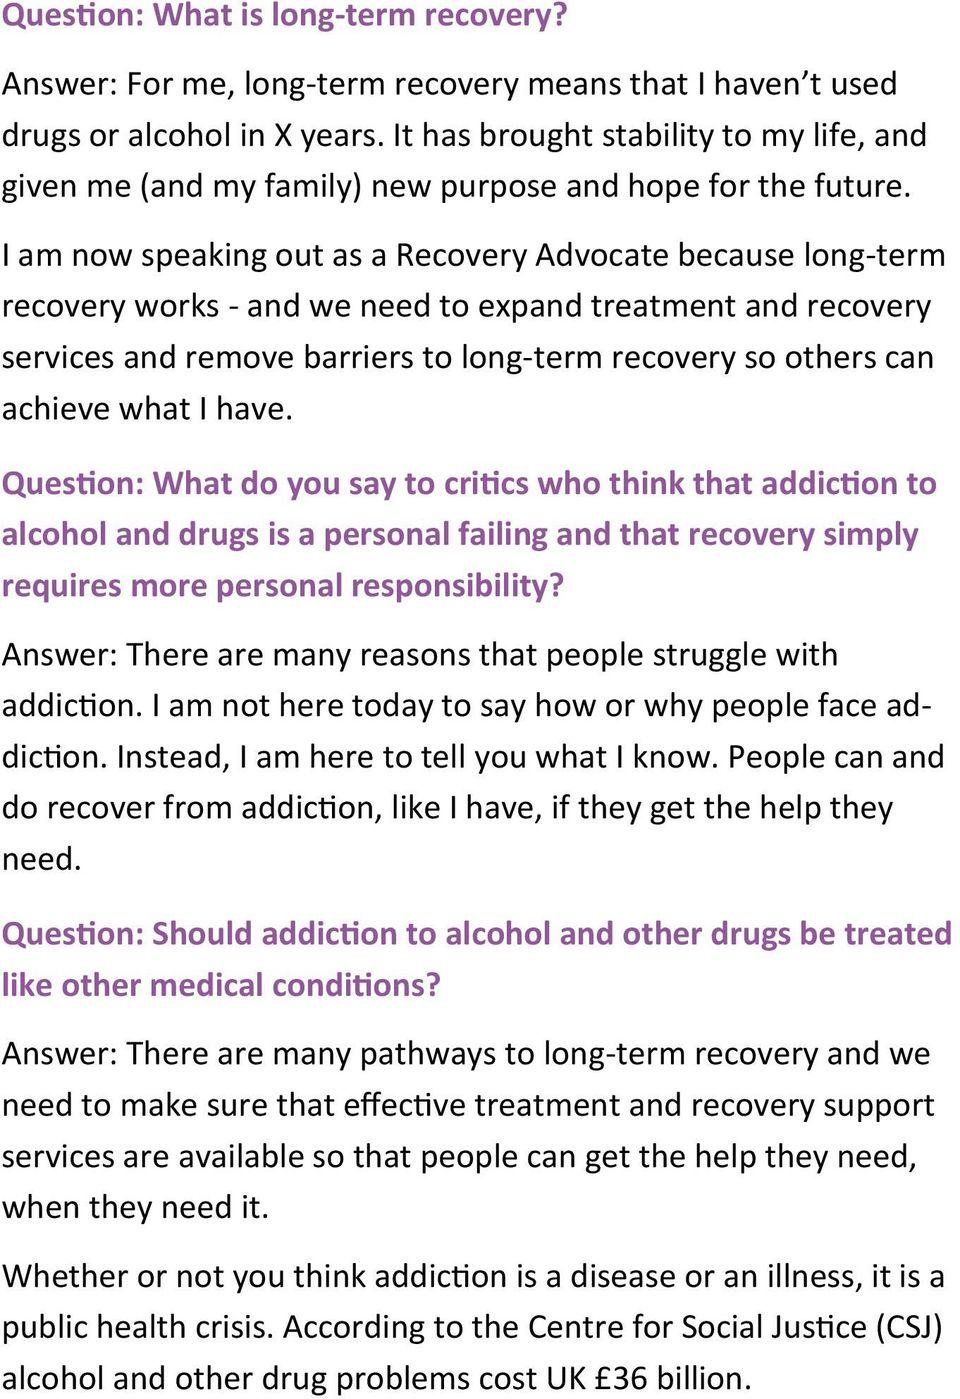 I am now speaking out as a Recovery Advocate because long-term recovery works - and we need to expand treatment and recovery services and remove barriers to long-term recovery so others can achieve